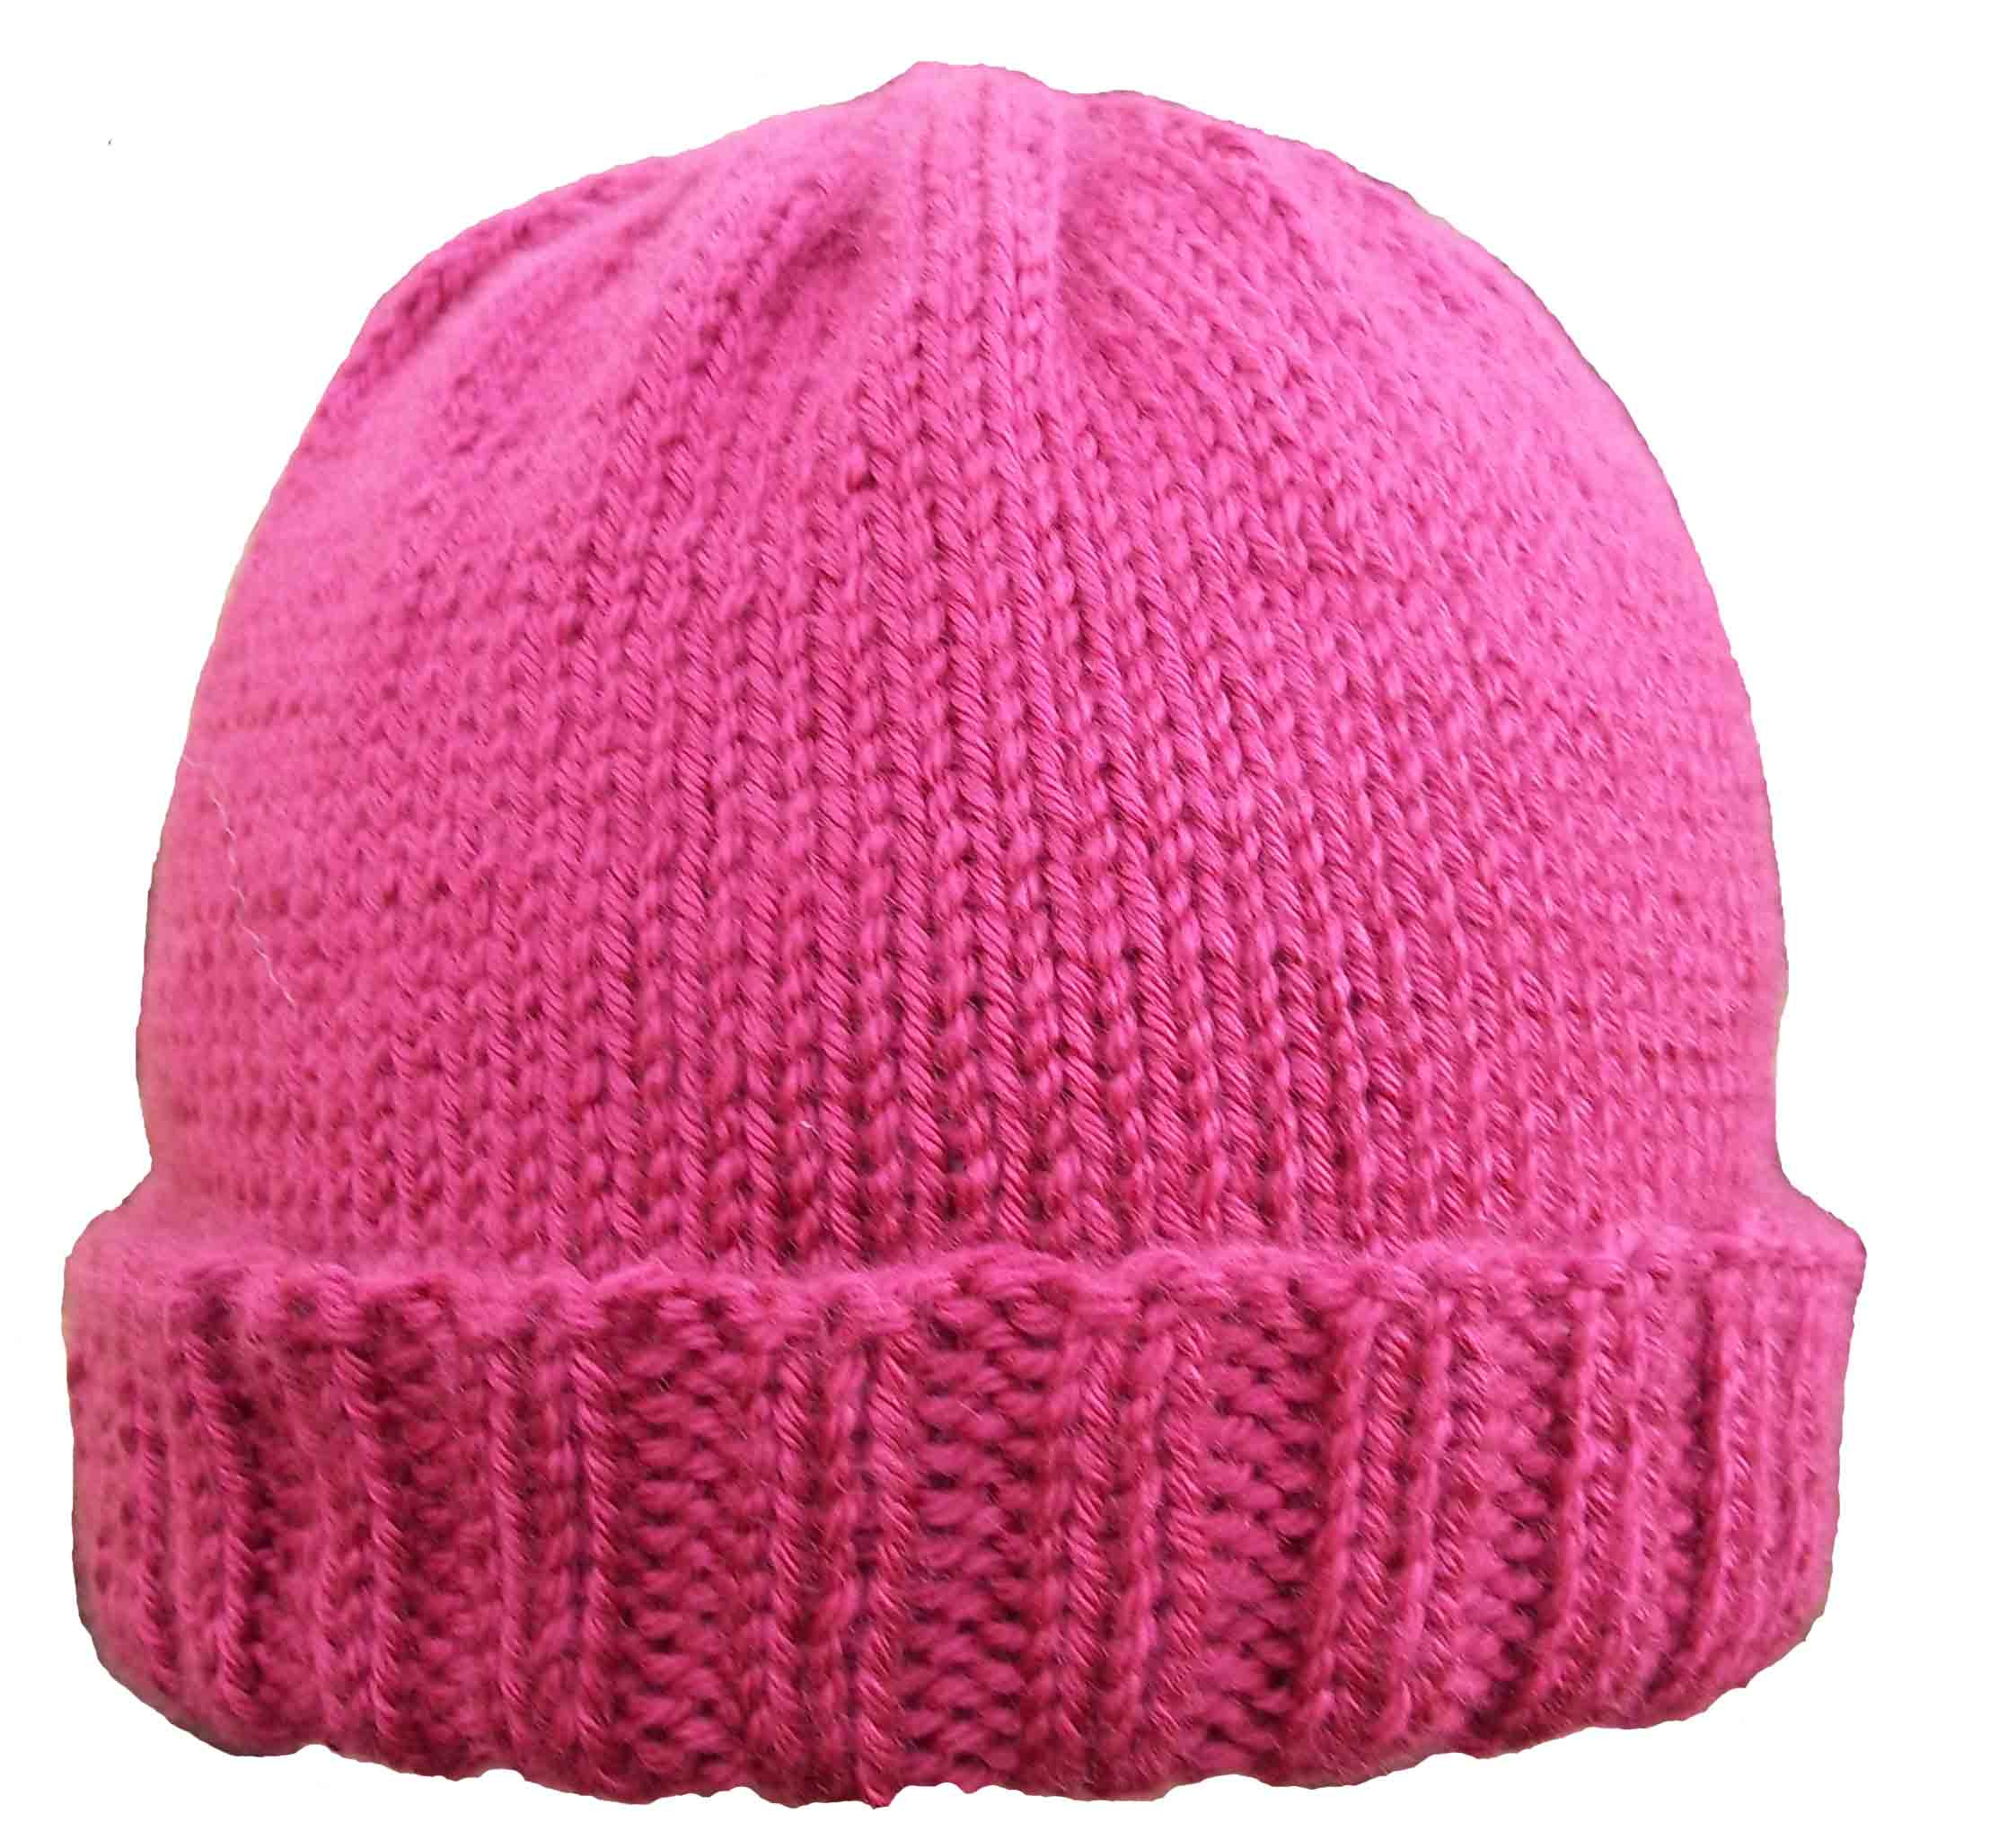 Unique Easy Knitted Hat Patterns Free Patterns Easy Knit Hat Pattern Free Of Top 45 Pictures Easy Knit Hat Pattern Free